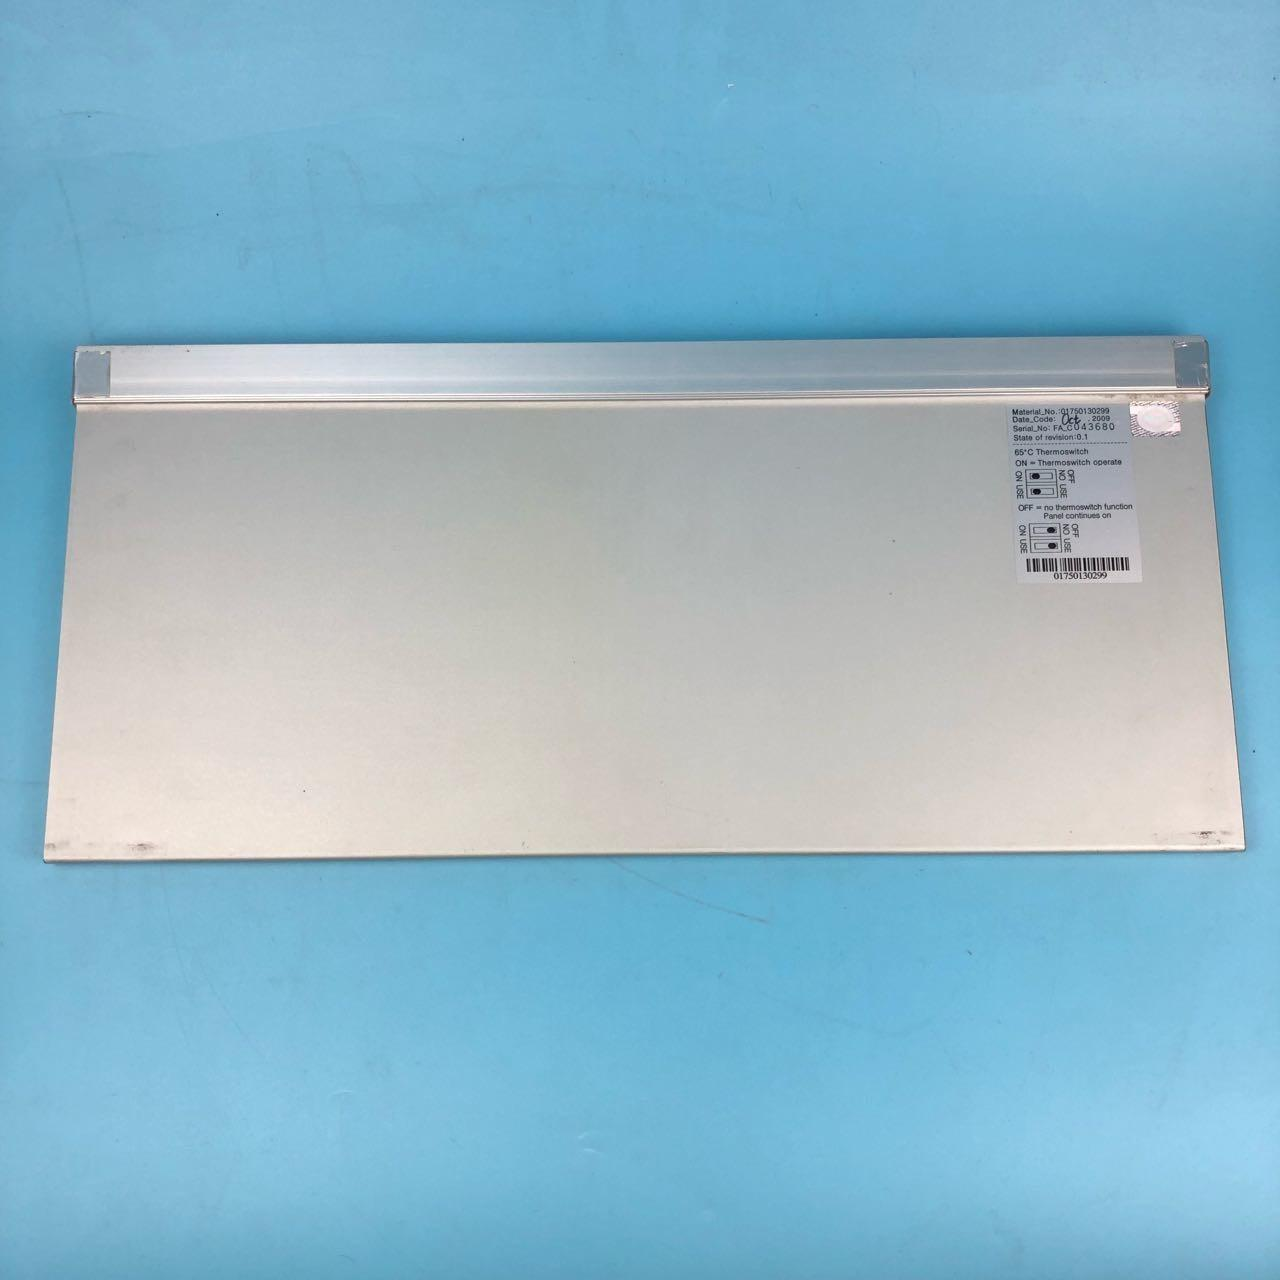 Cheap Wincor Nixdorf ATM spare parts Light Panel 1750130299 01750130299 for sale